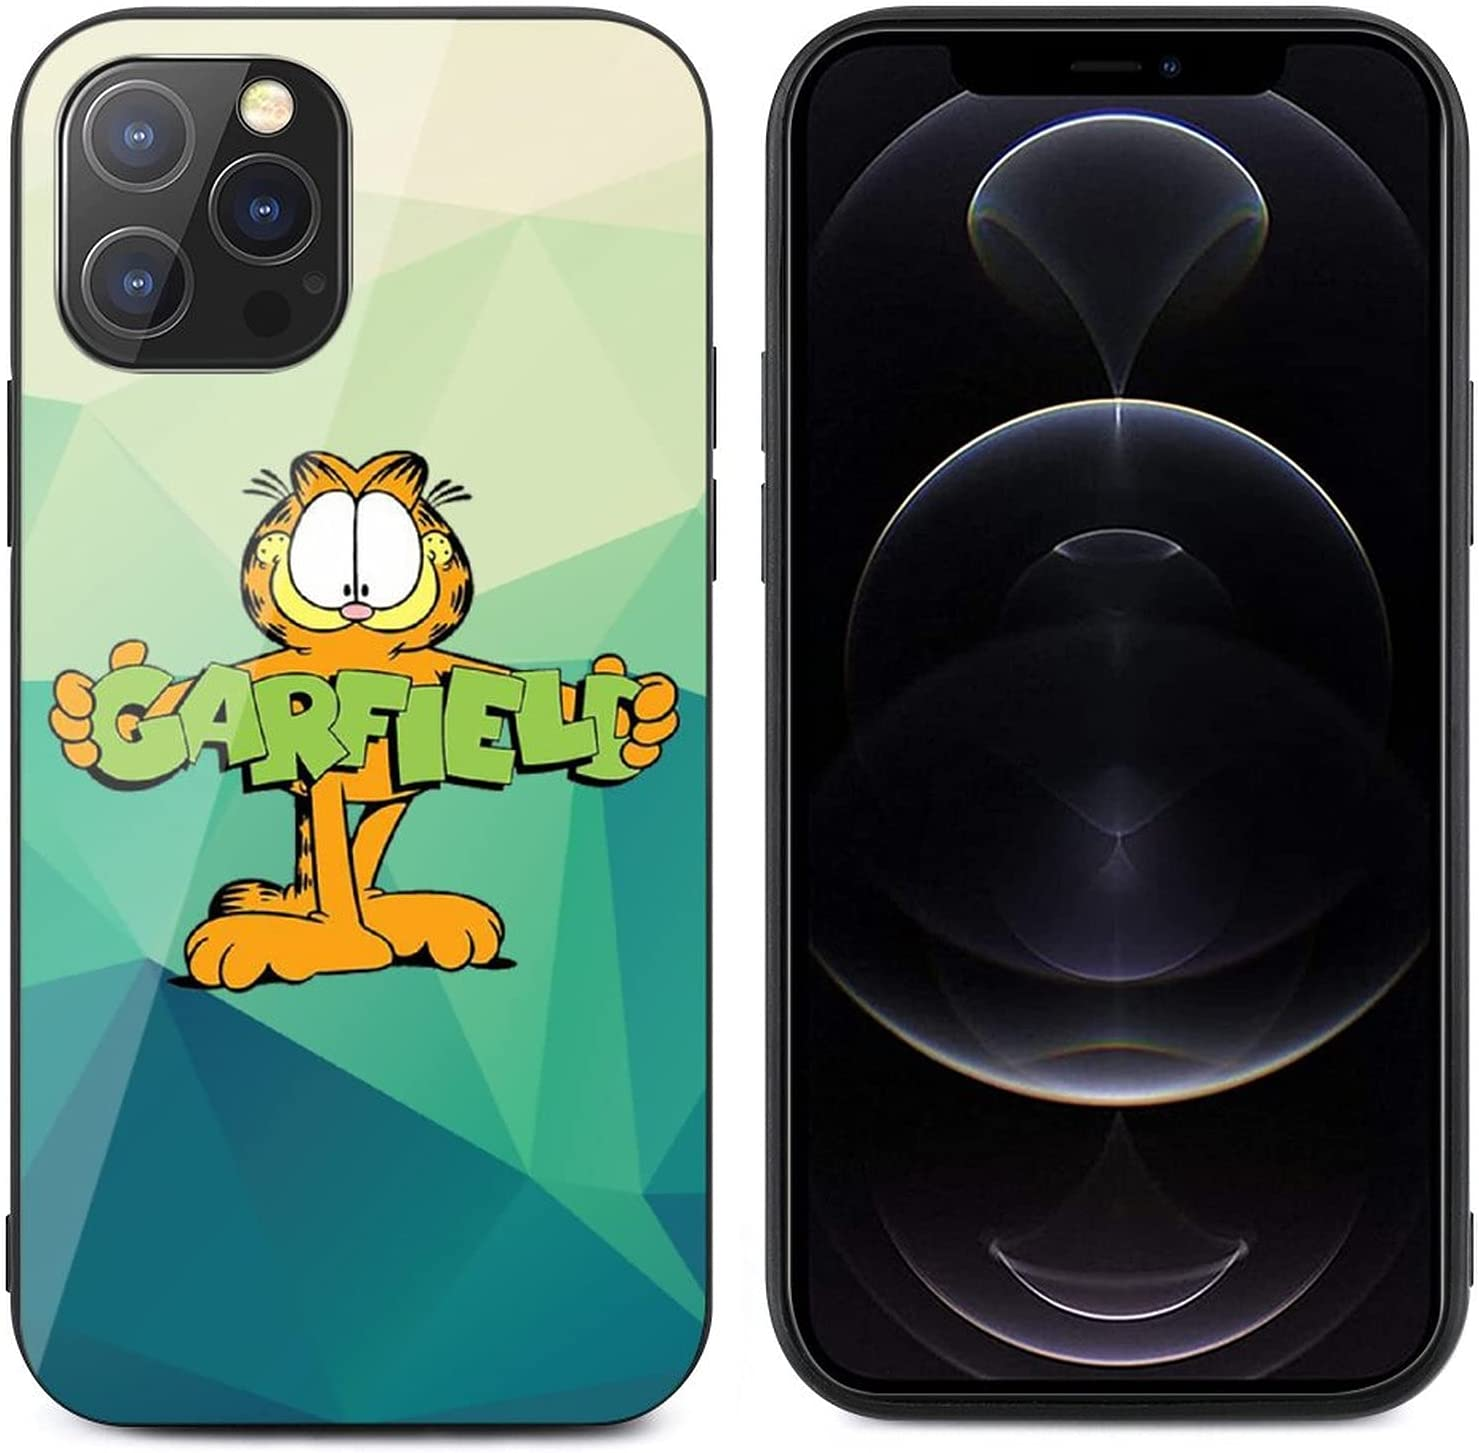 Garfield for iPhone 12 Glass case Anti-Scratch Shockproof Cover Protective Case for iPhone 12/12 pro max case, Protective Compatible with for iPhone 12Pro Max